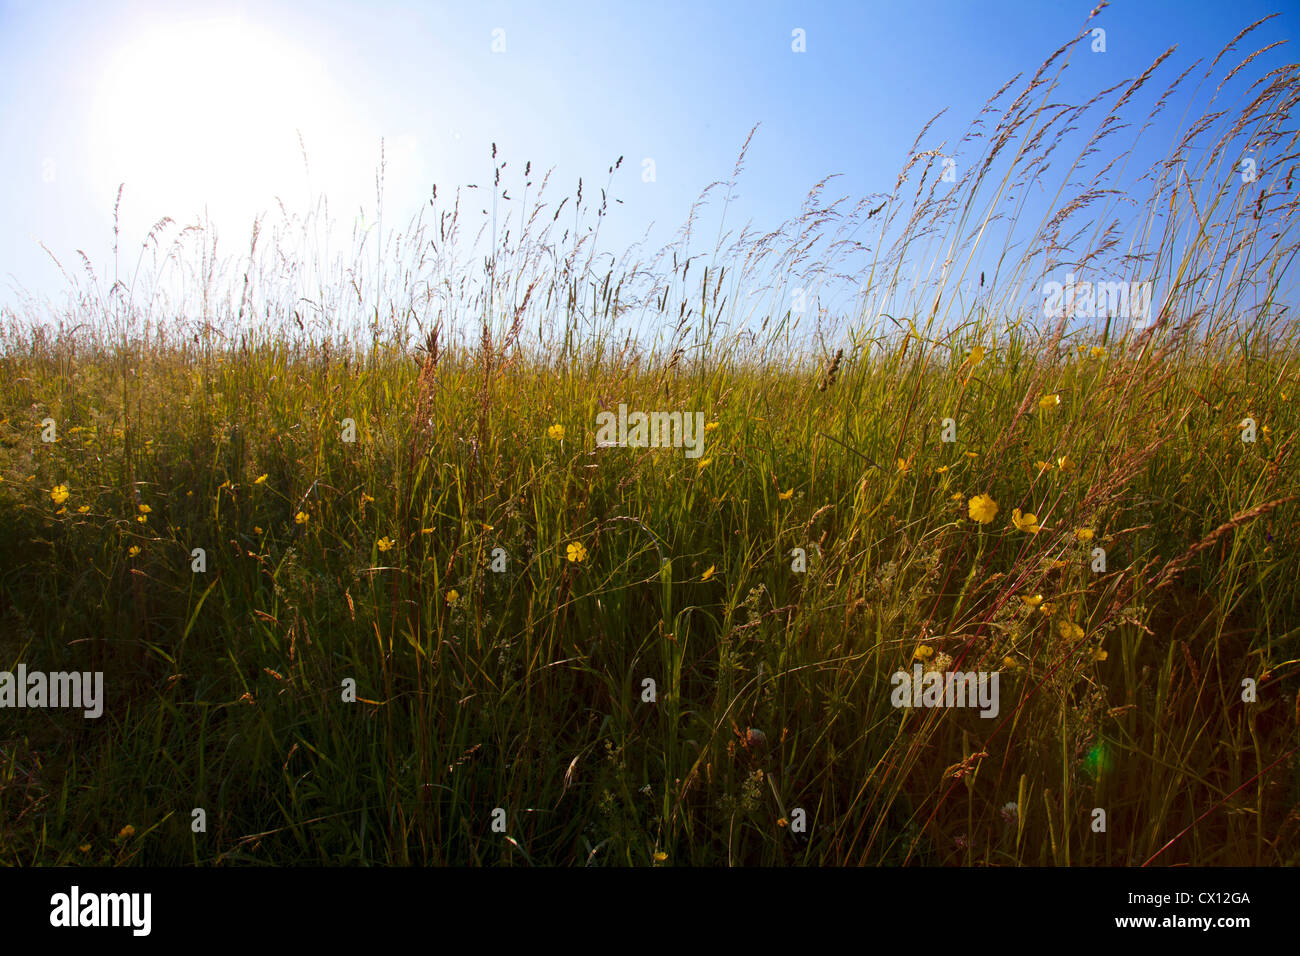 Sky and field of tall grass - Stock Image